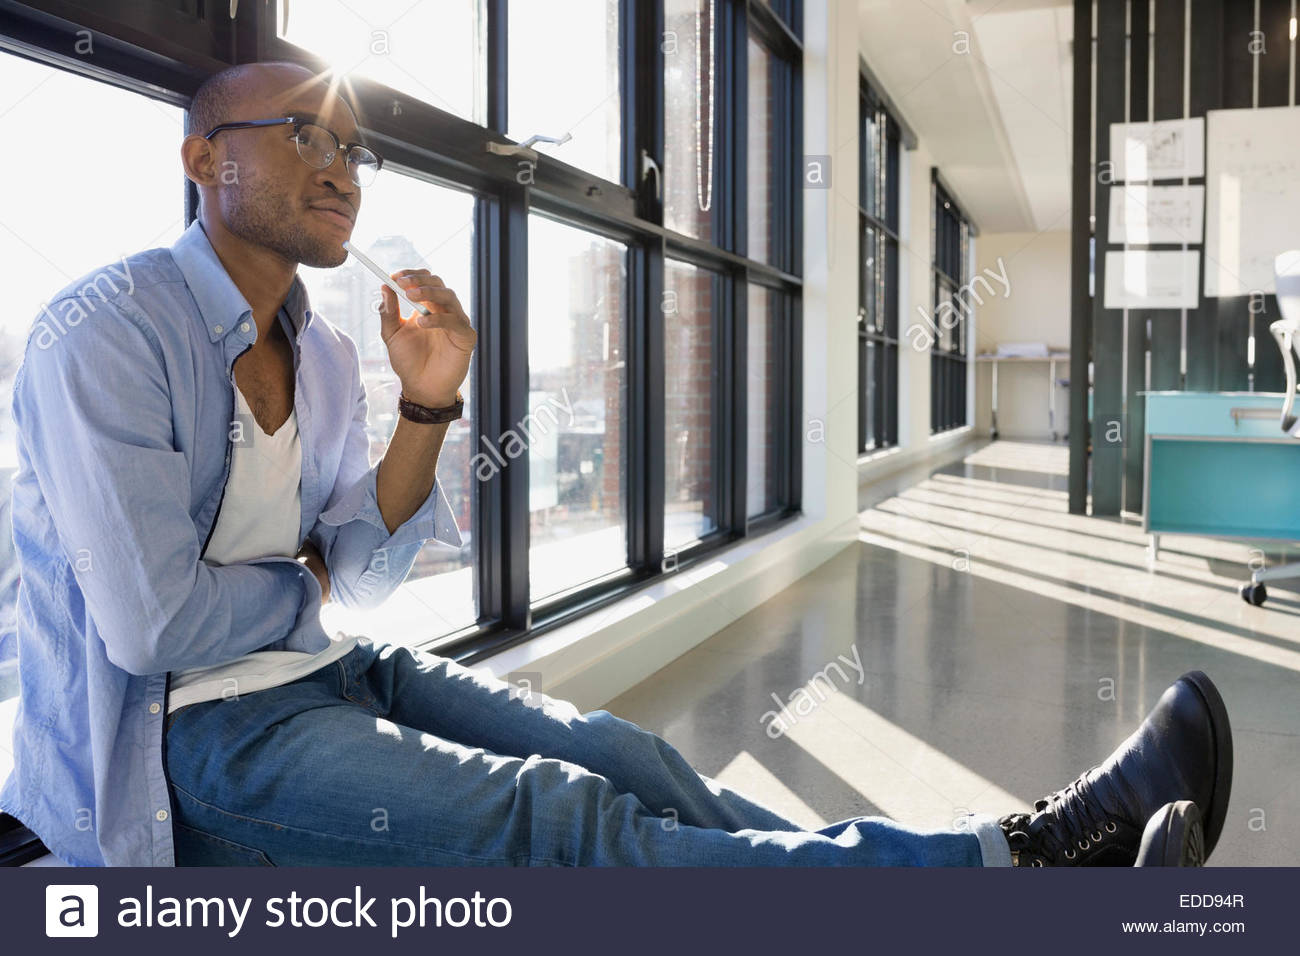 Pensive businessman at window in office - Stock Image